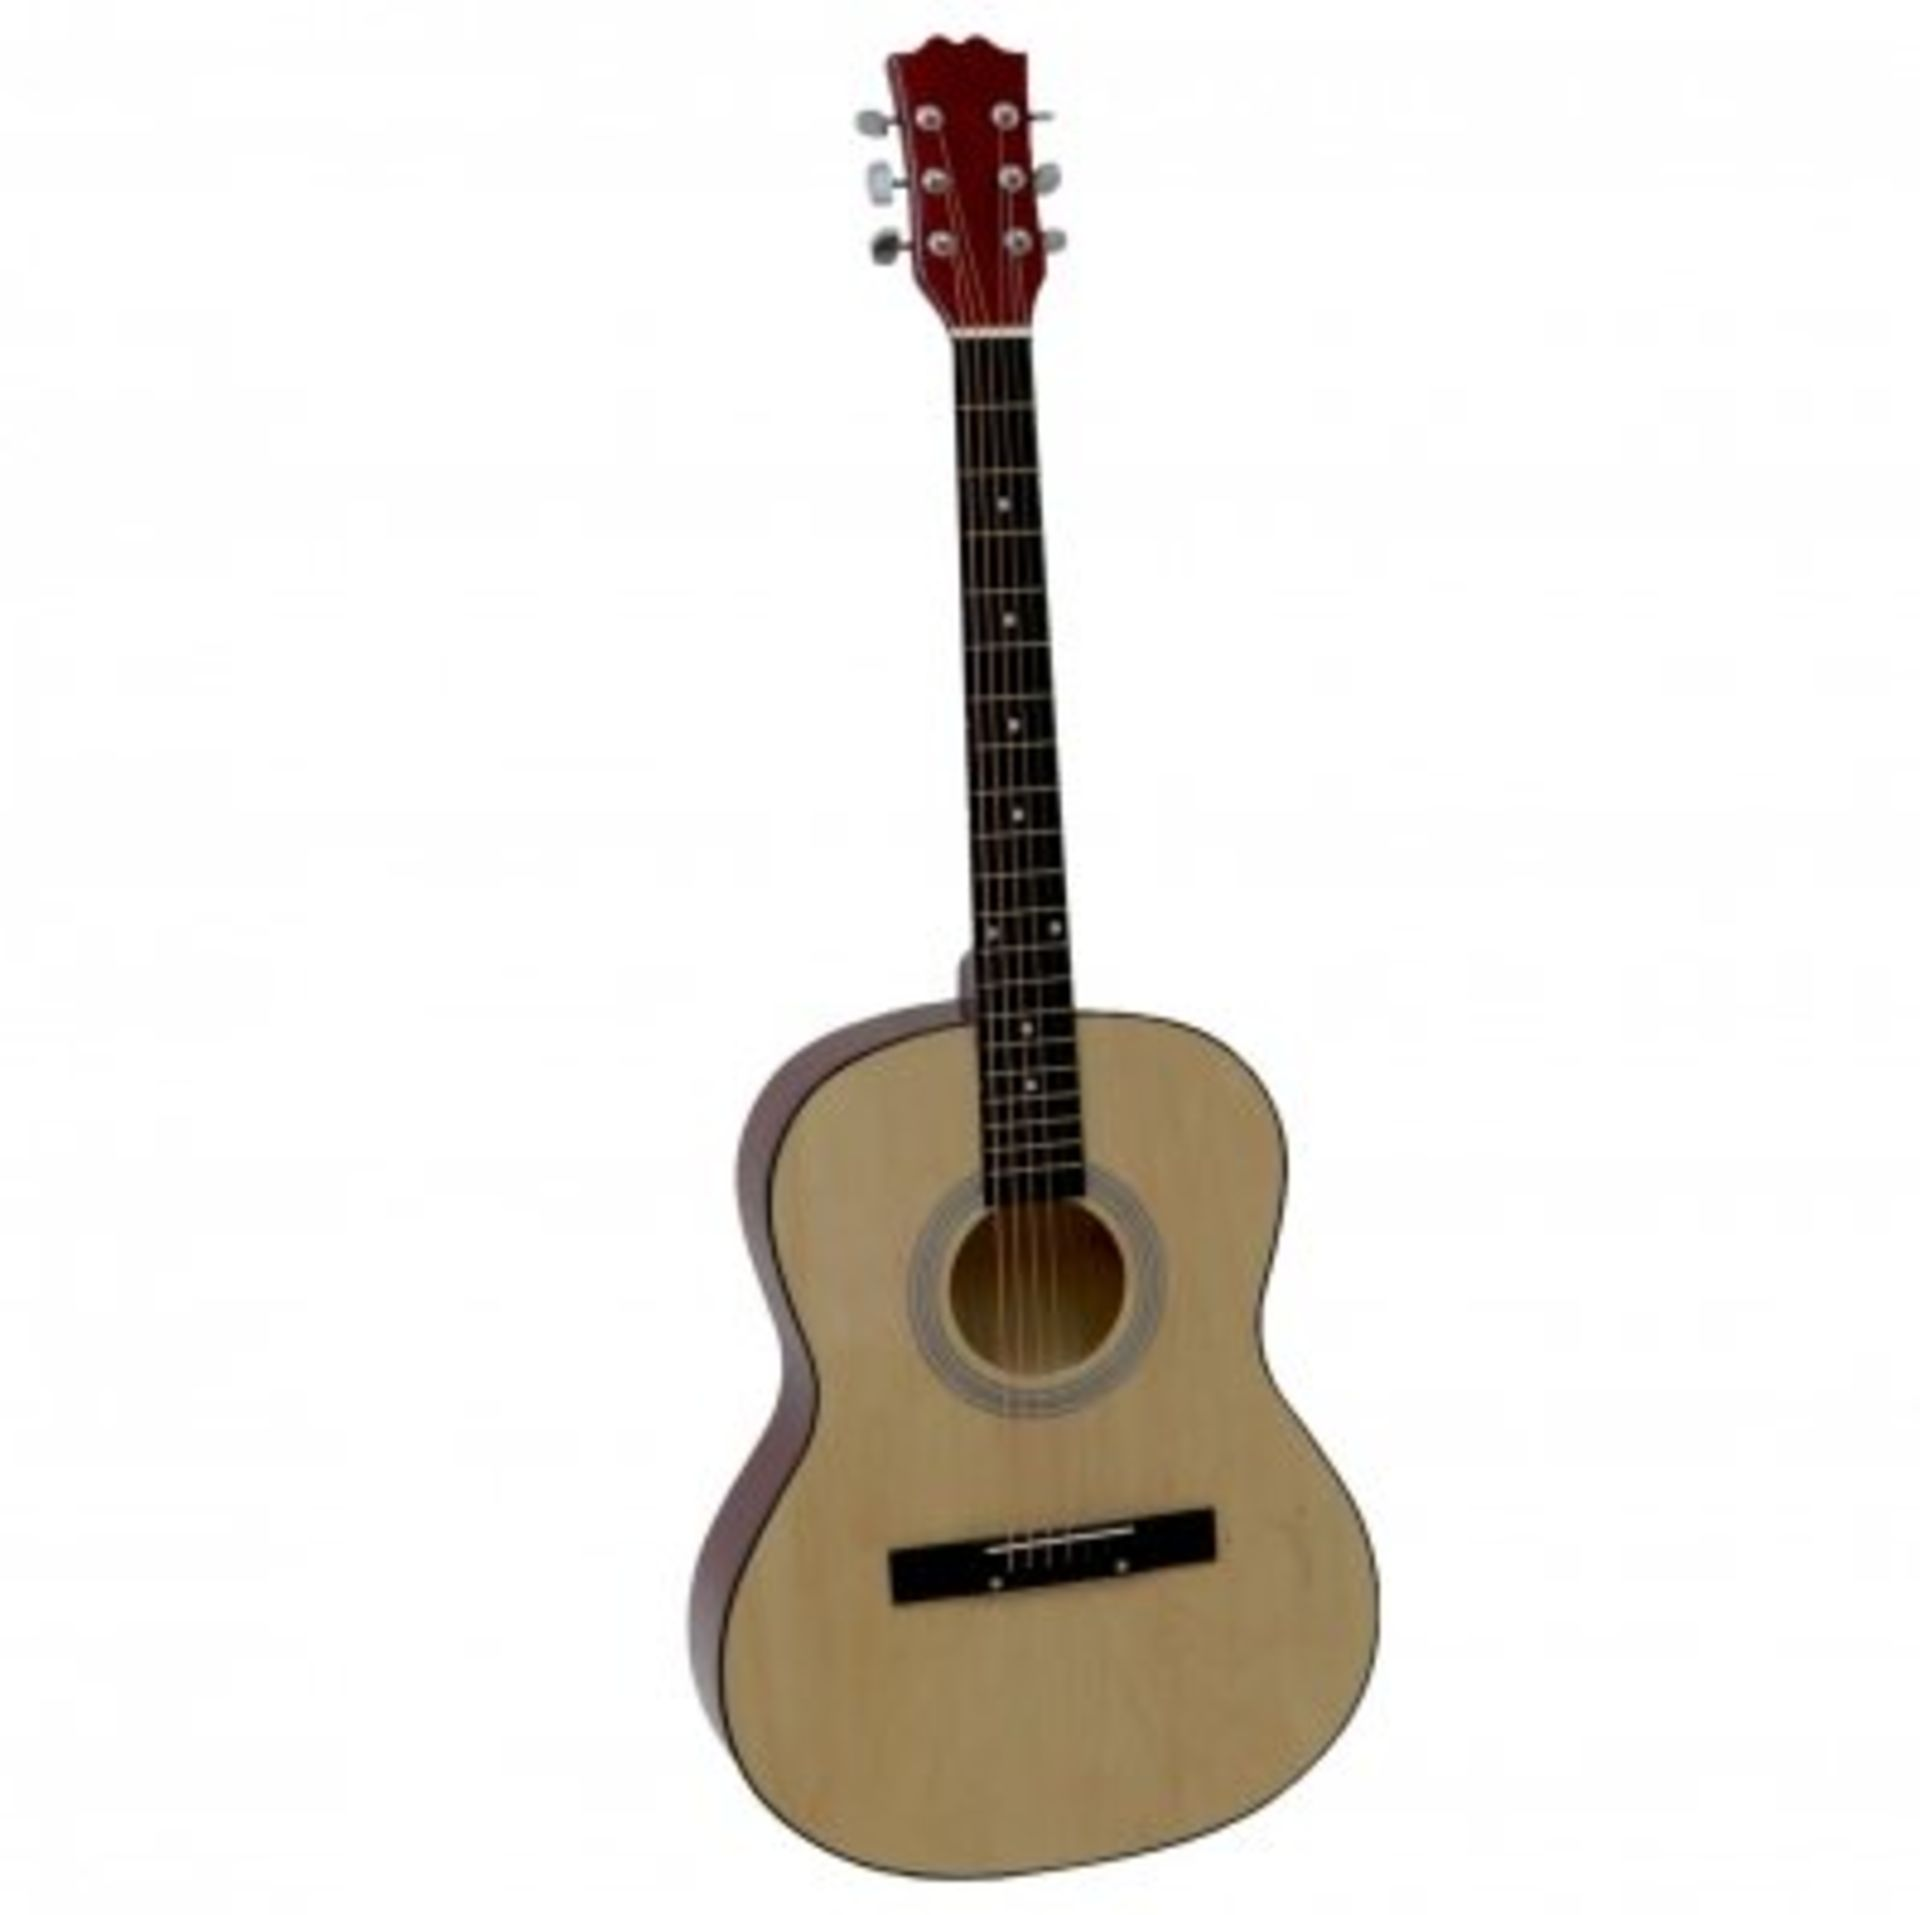 "Lot 73 - (RU44) 39"" Full Size 4/4 6 String Steel Strung Acoustic Guitar Perfect for beginners and exper..."